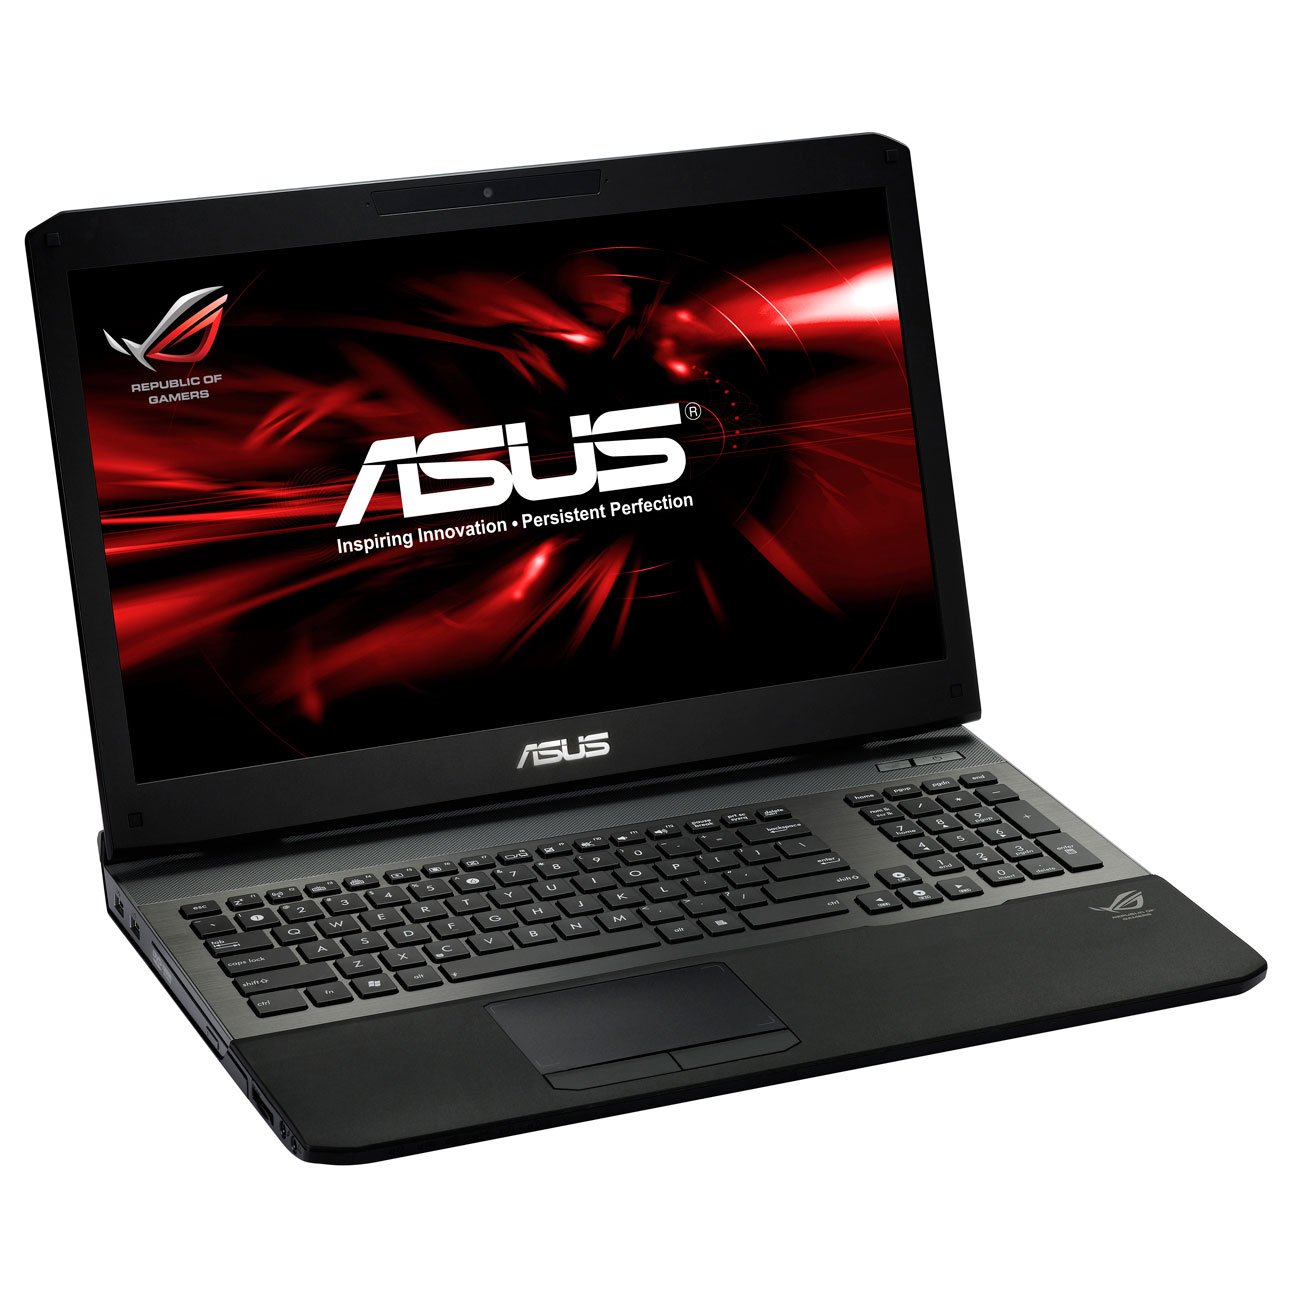 asus g75vw 9z203v pc portable asus sur ldlc. Black Bedroom Furniture Sets. Home Design Ideas